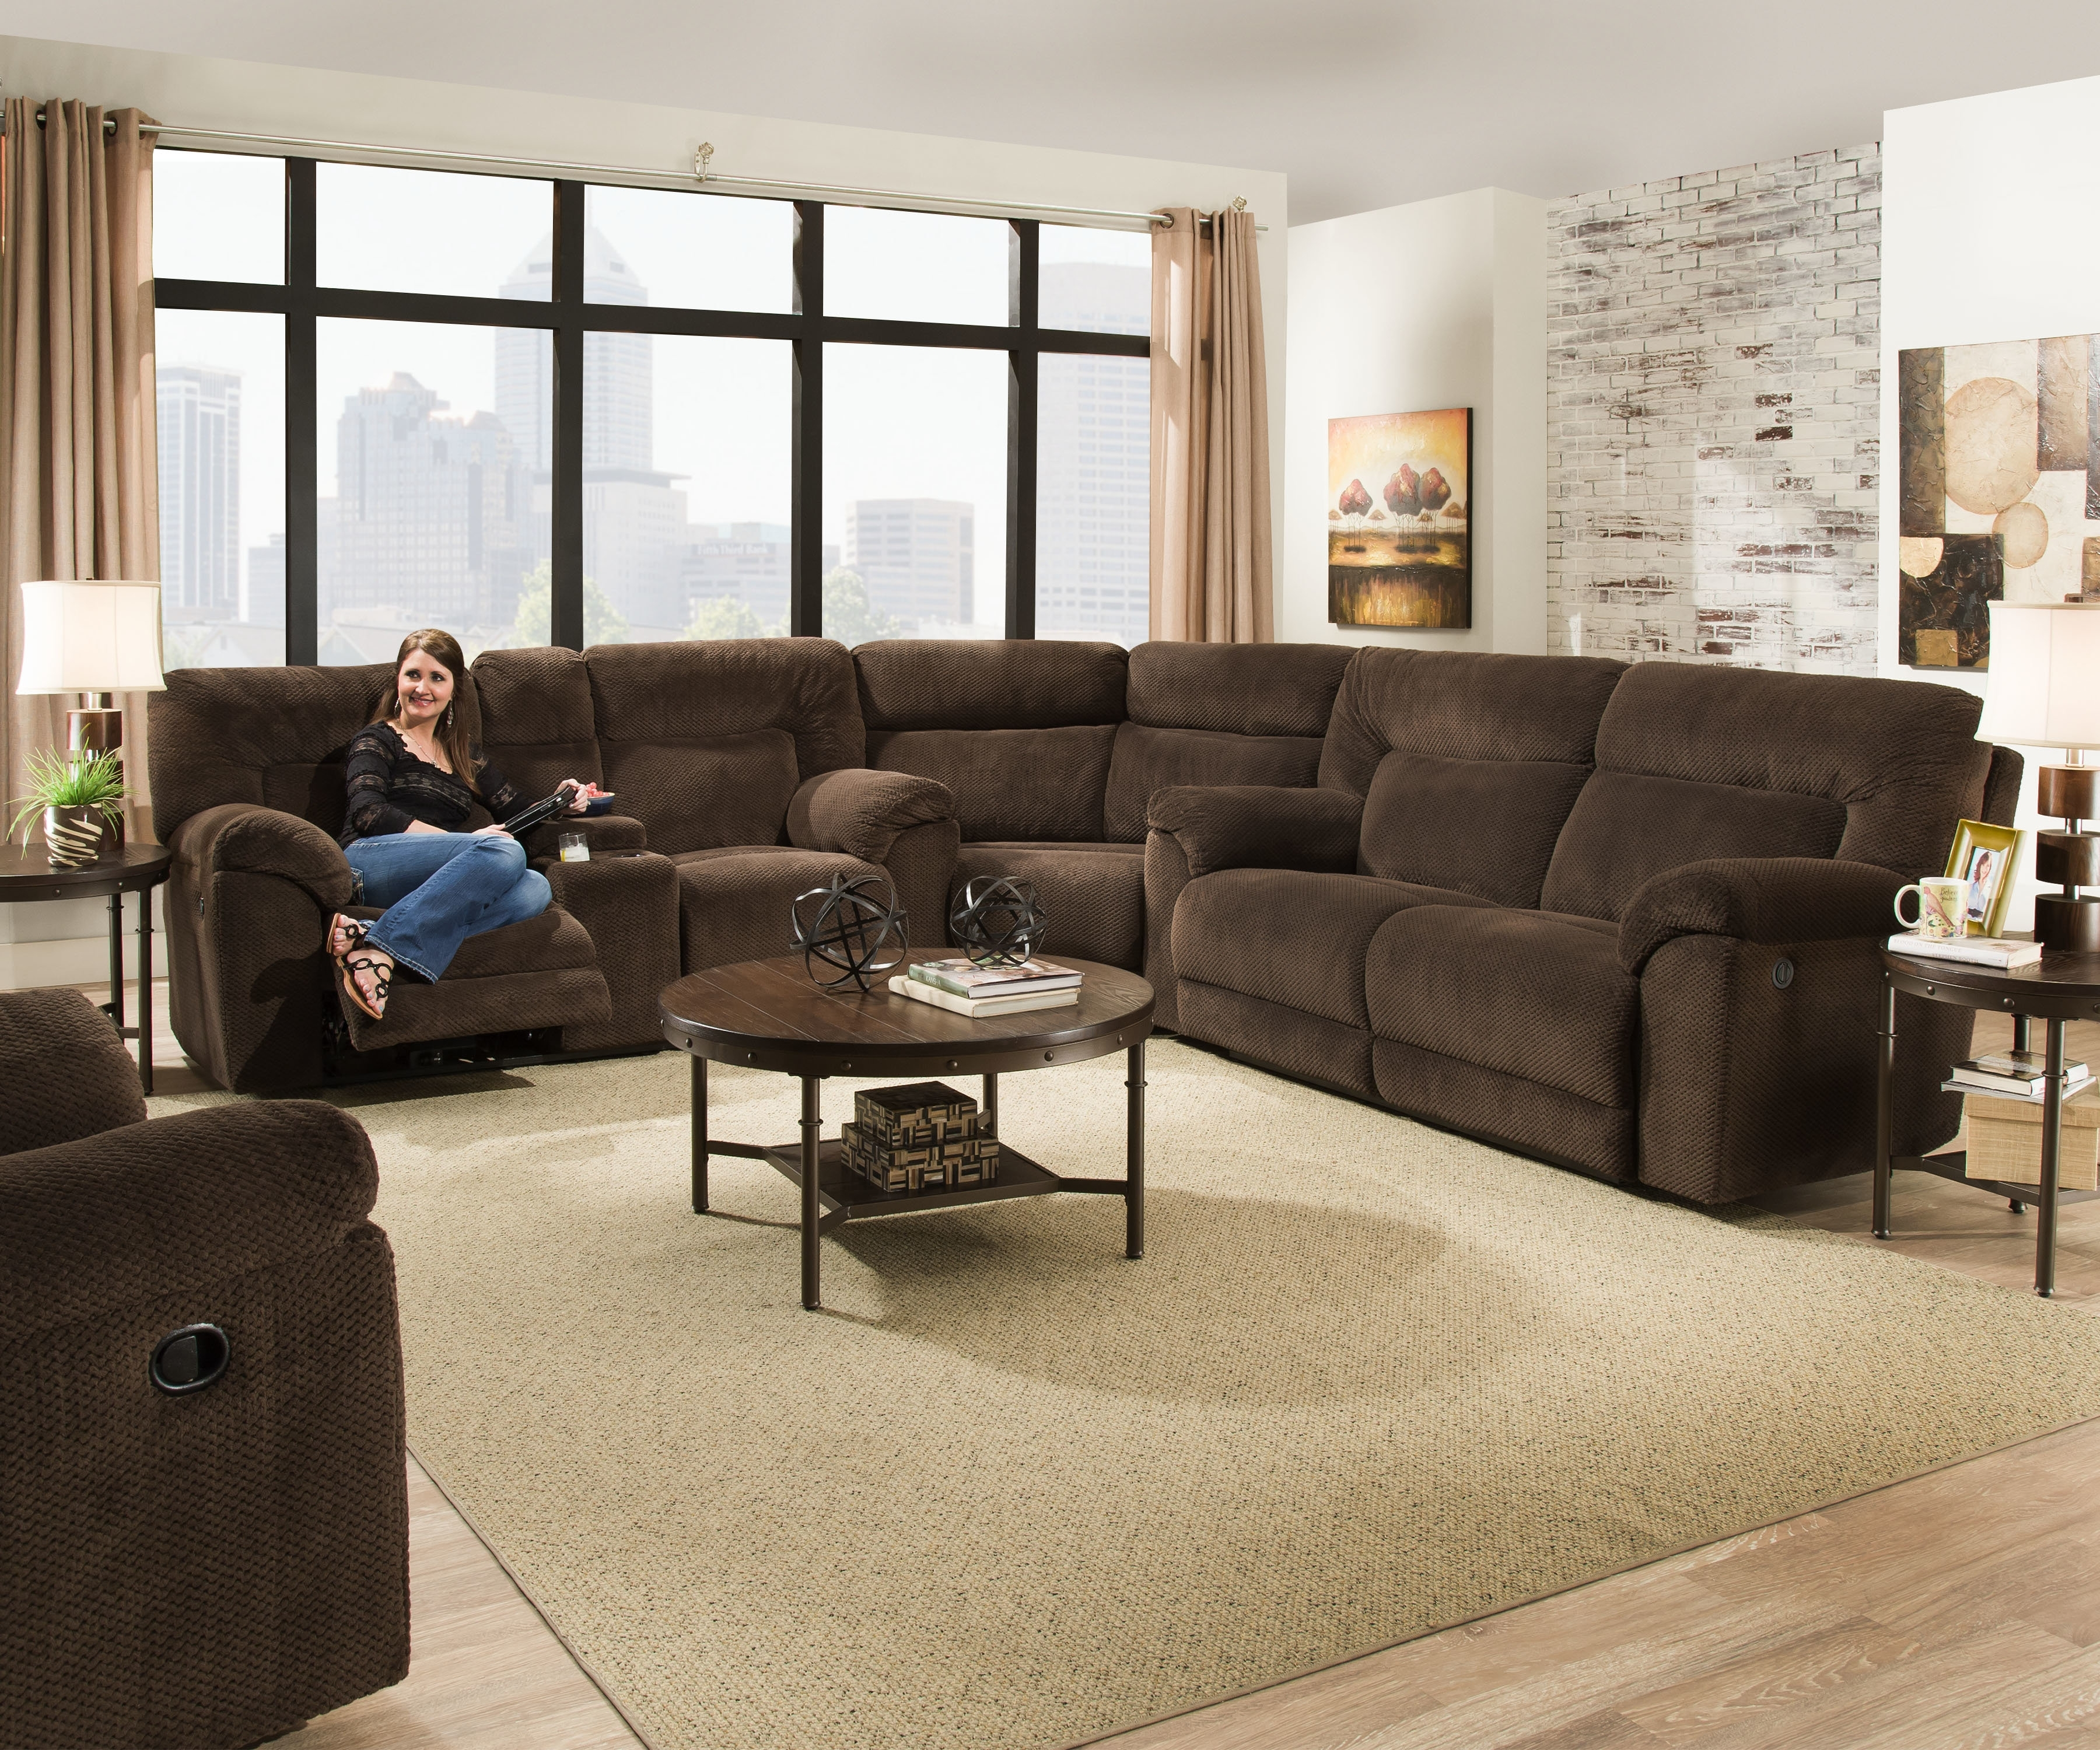 Darby Home Co Radcliff Reclining Sectional | Wayfair within Karen 3 Piece Sectionals (Image 9 of 30)